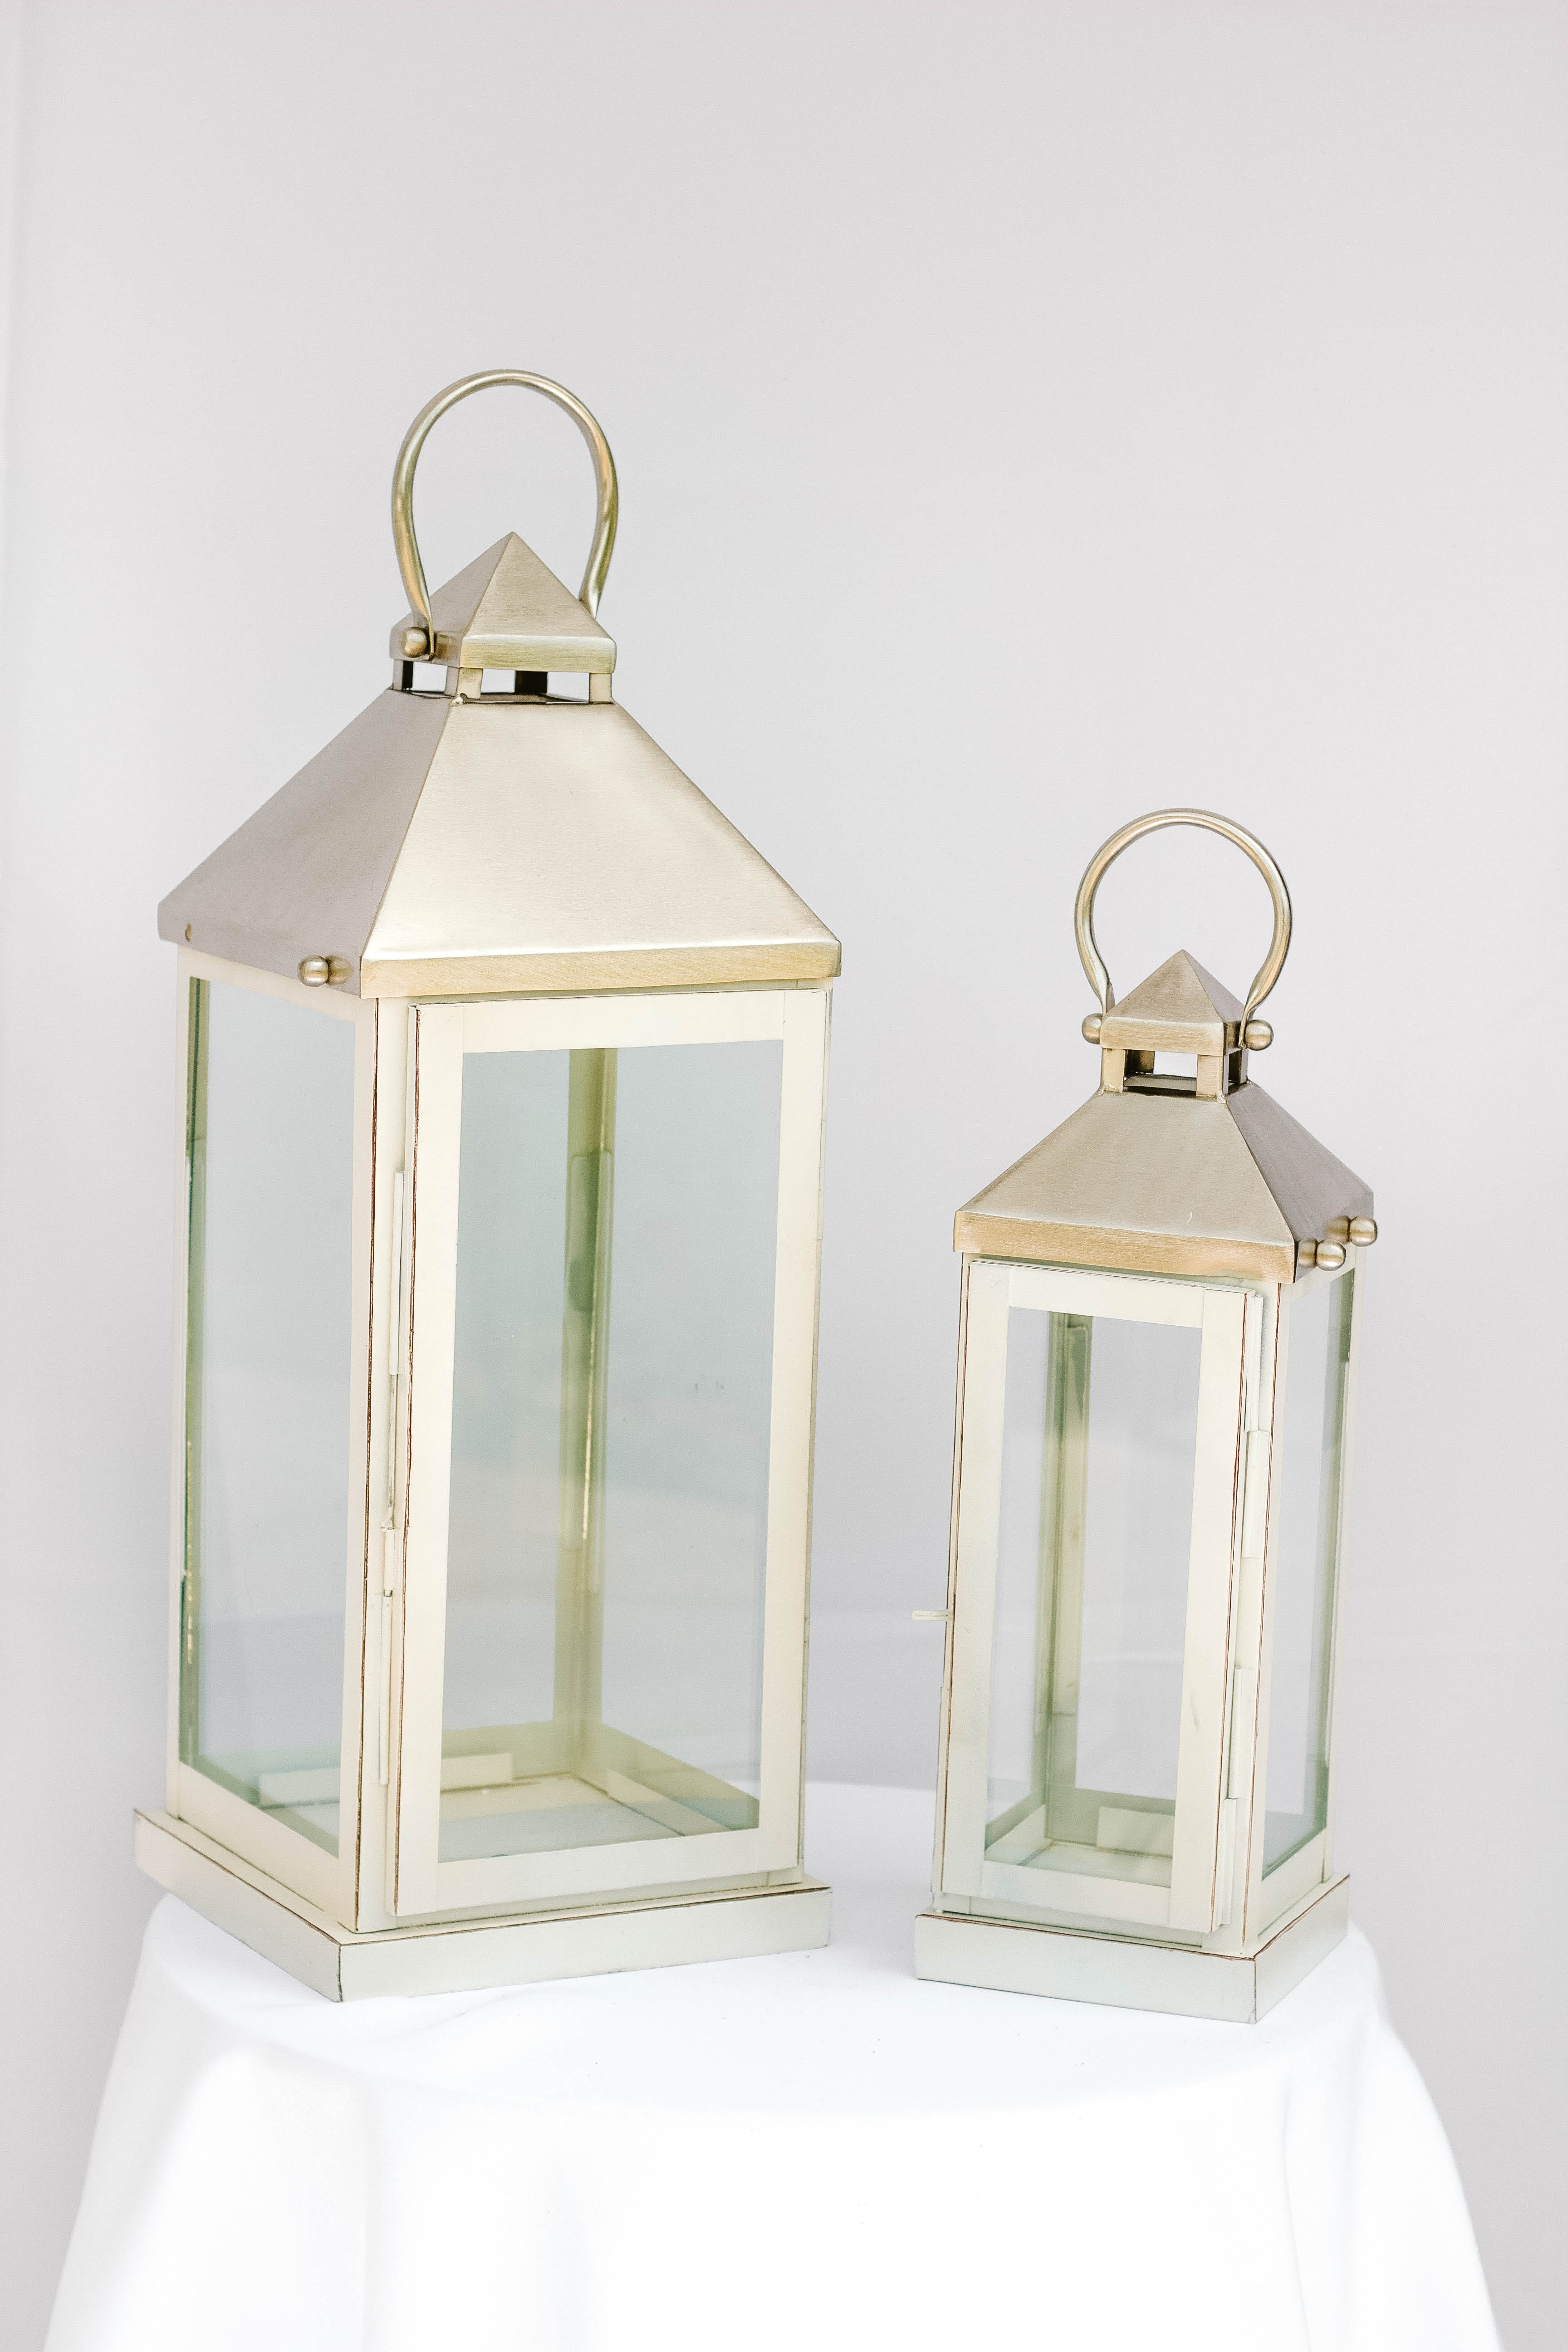 Medium and Small Silver/Ivory Lantern